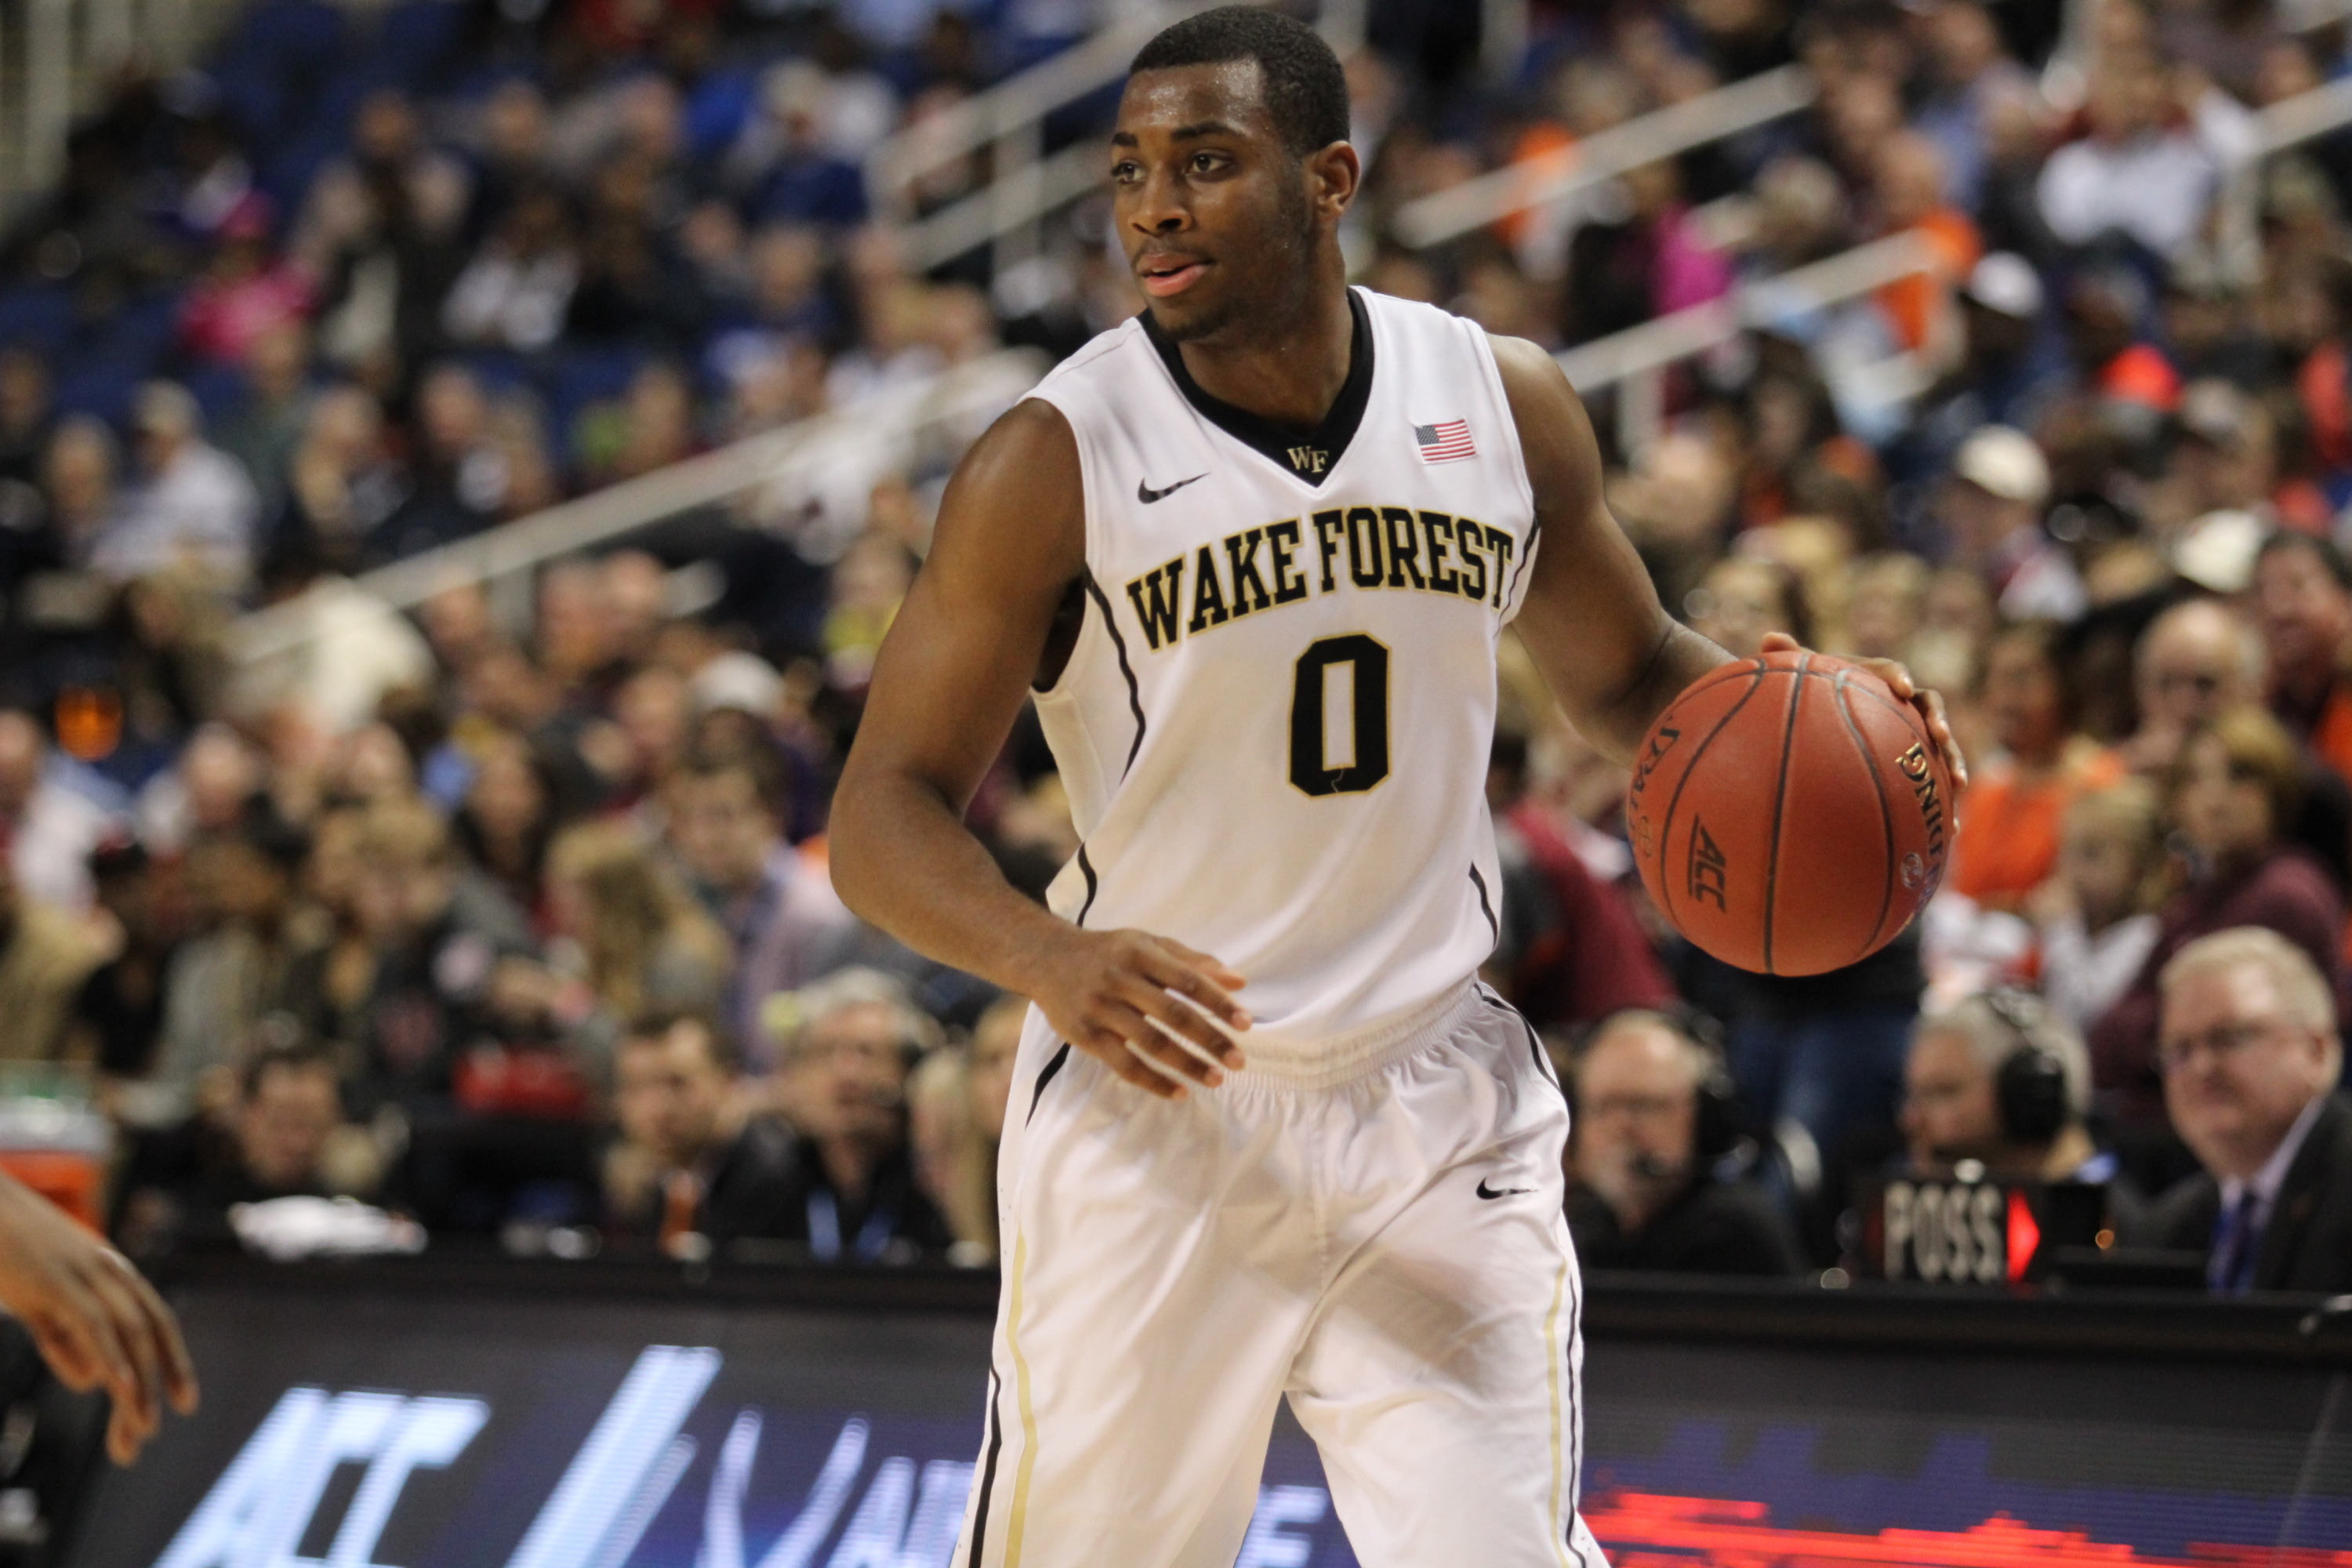 wake forest announces 2015-16 men's basketball schedule - wake